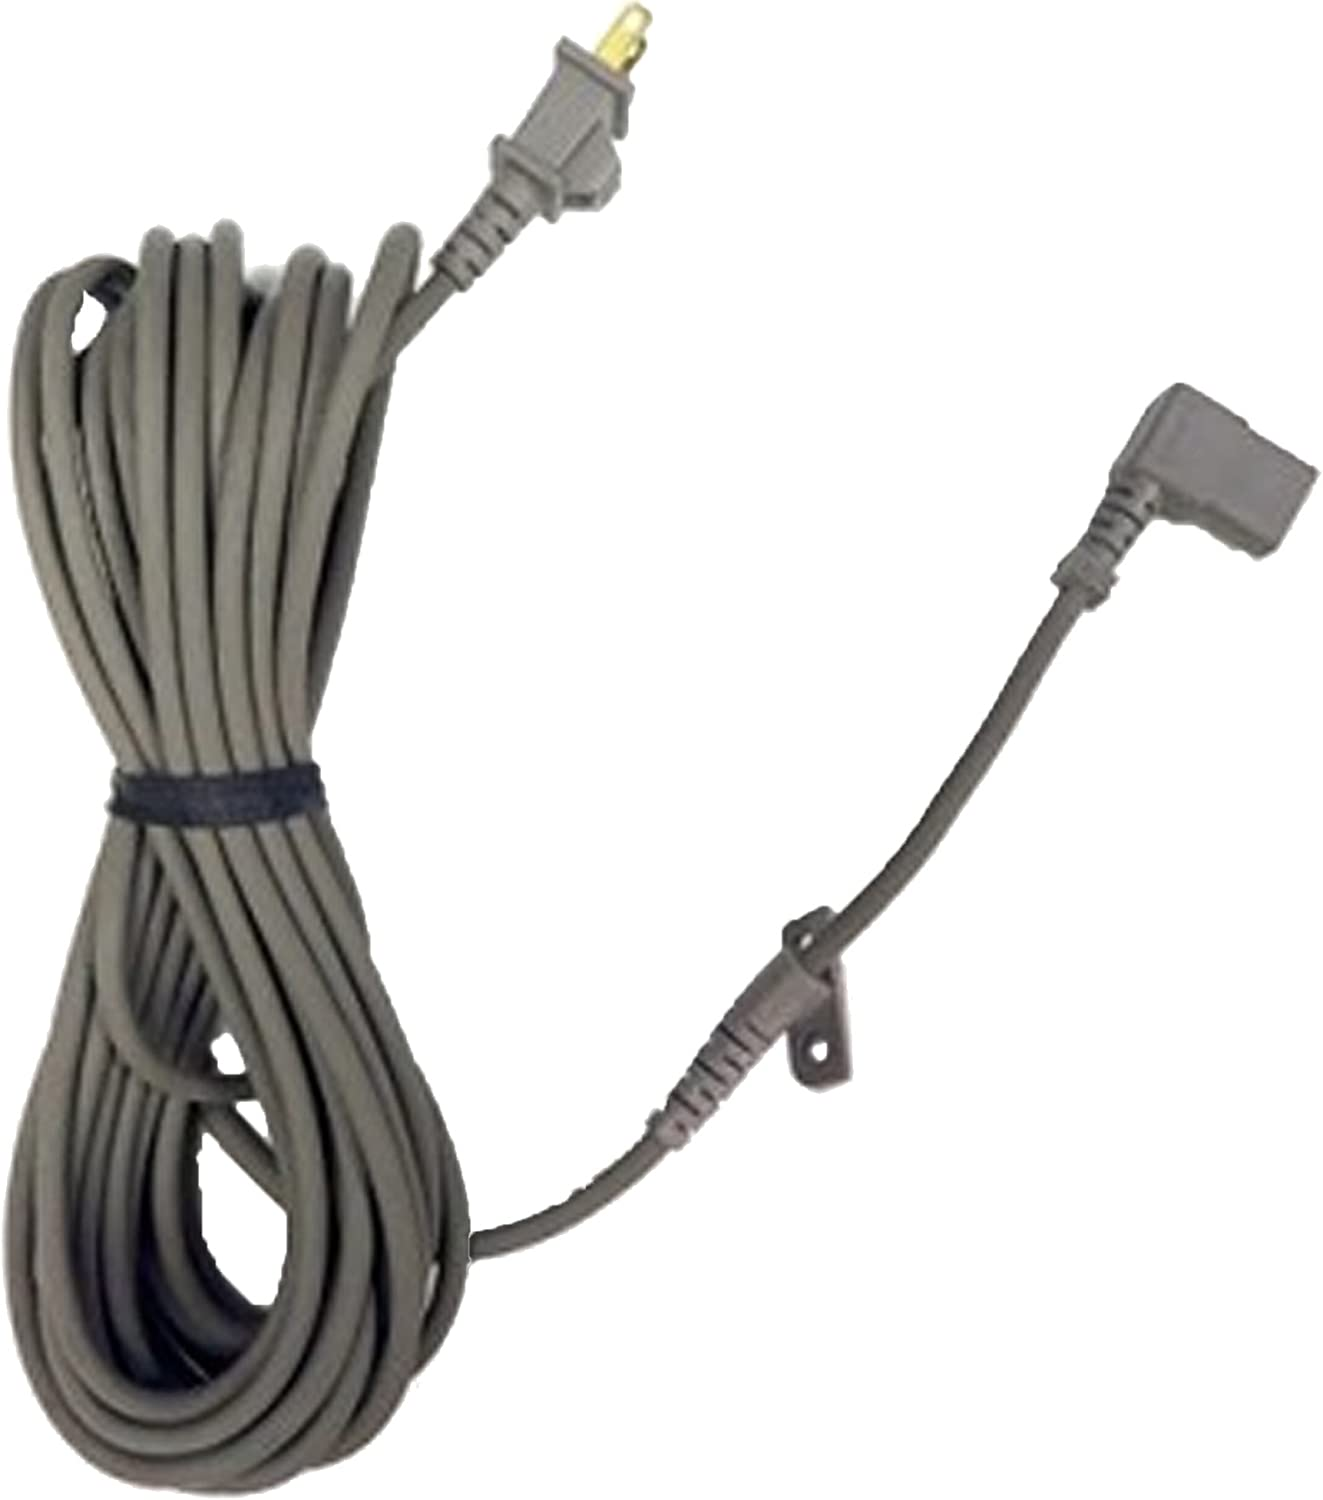 Kirby Sentria 2, SE2, G11, G11D Vacuum Cleaner 32 Foot Power Cord #192012, French Gray